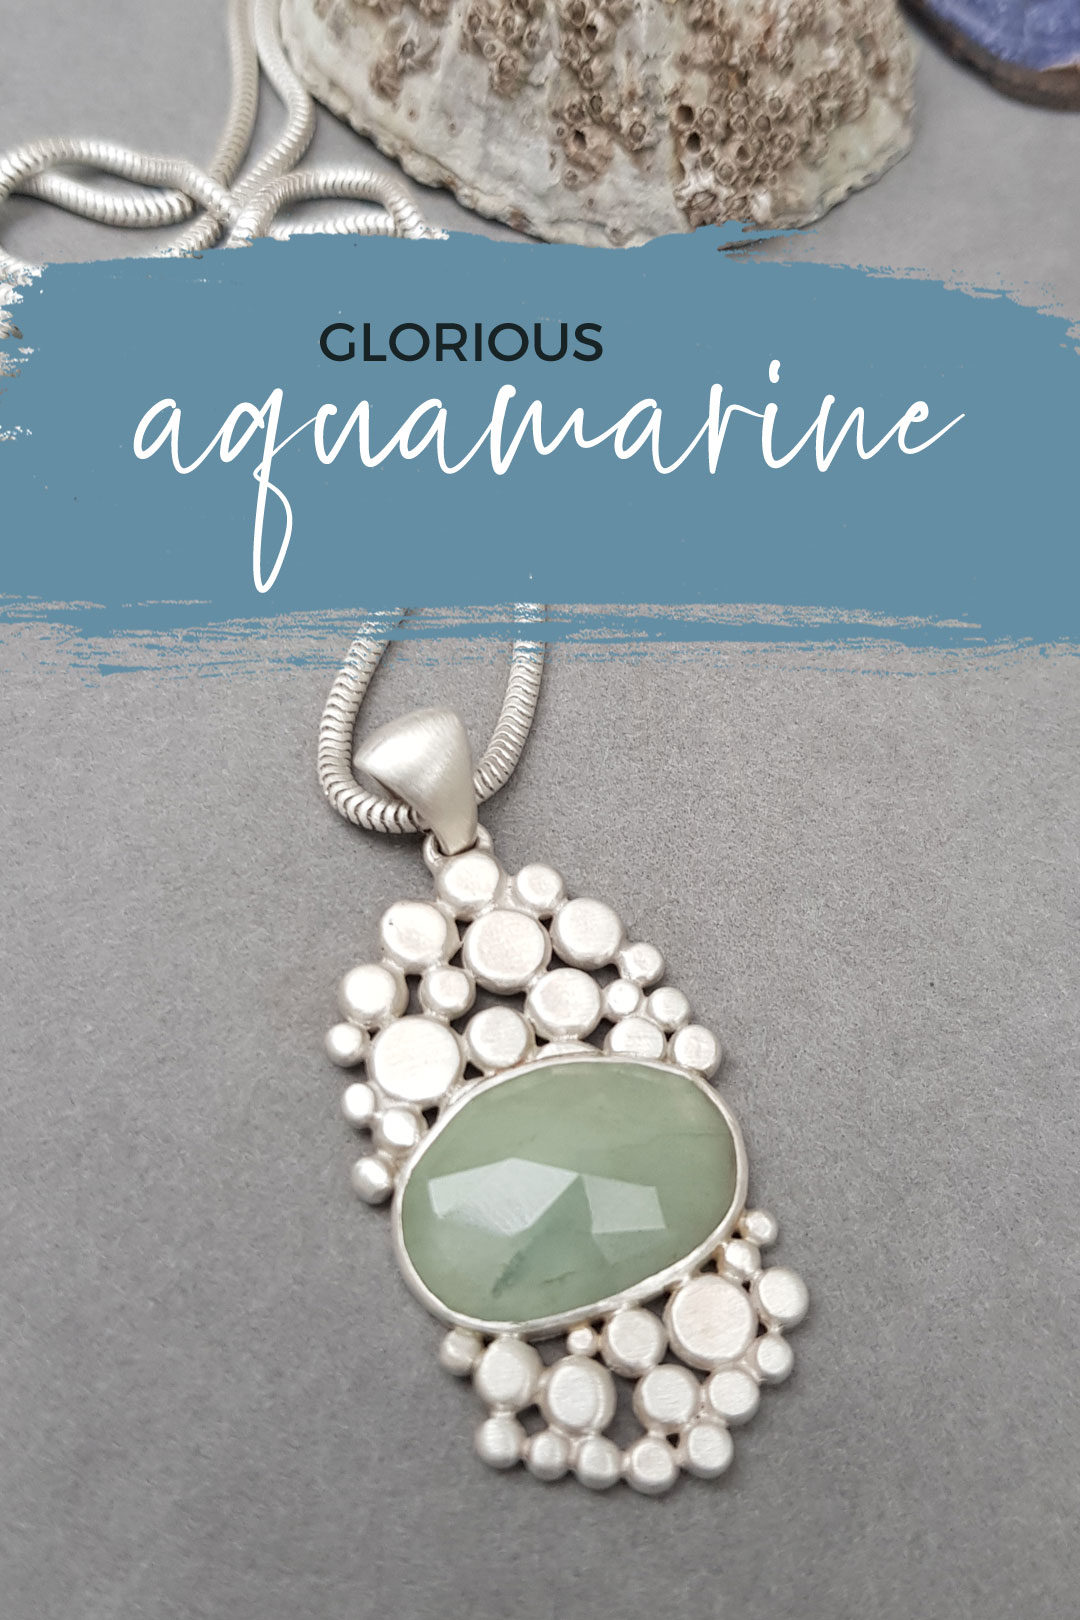 Aquamarine for winter and spring alike